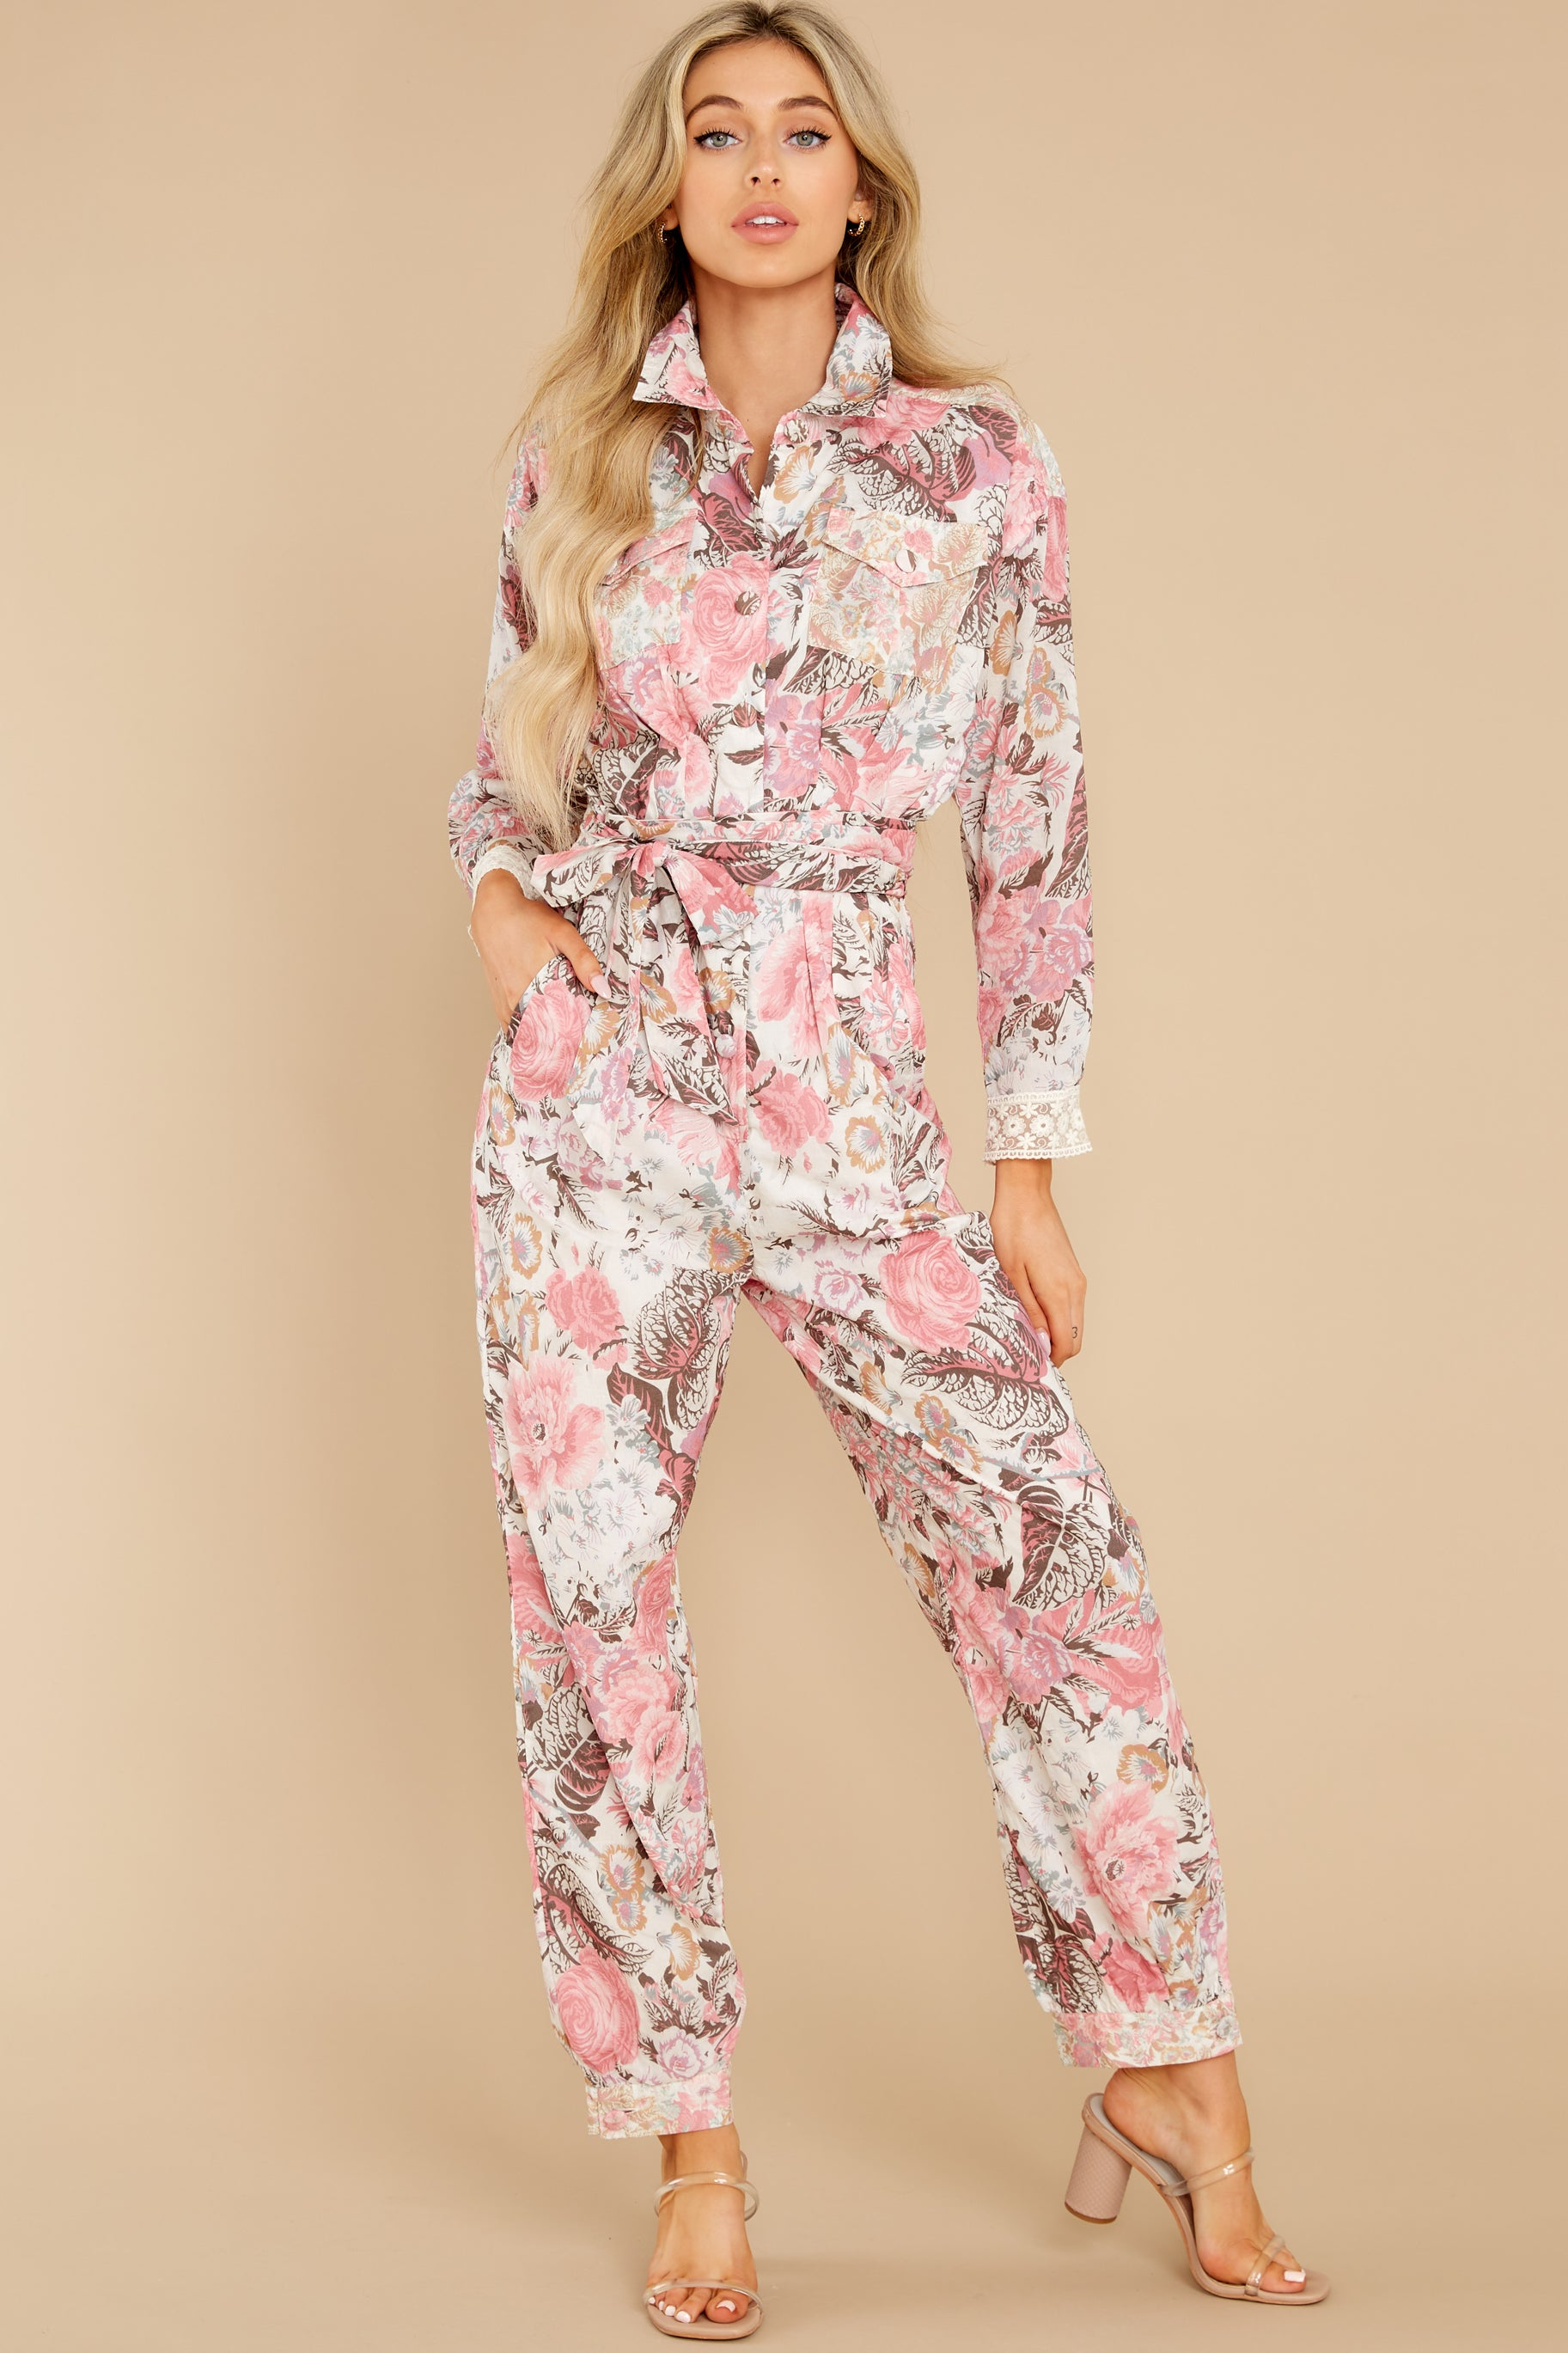 2 Morellia Dew Drops Corduroy Jumpsuit at reddress.com